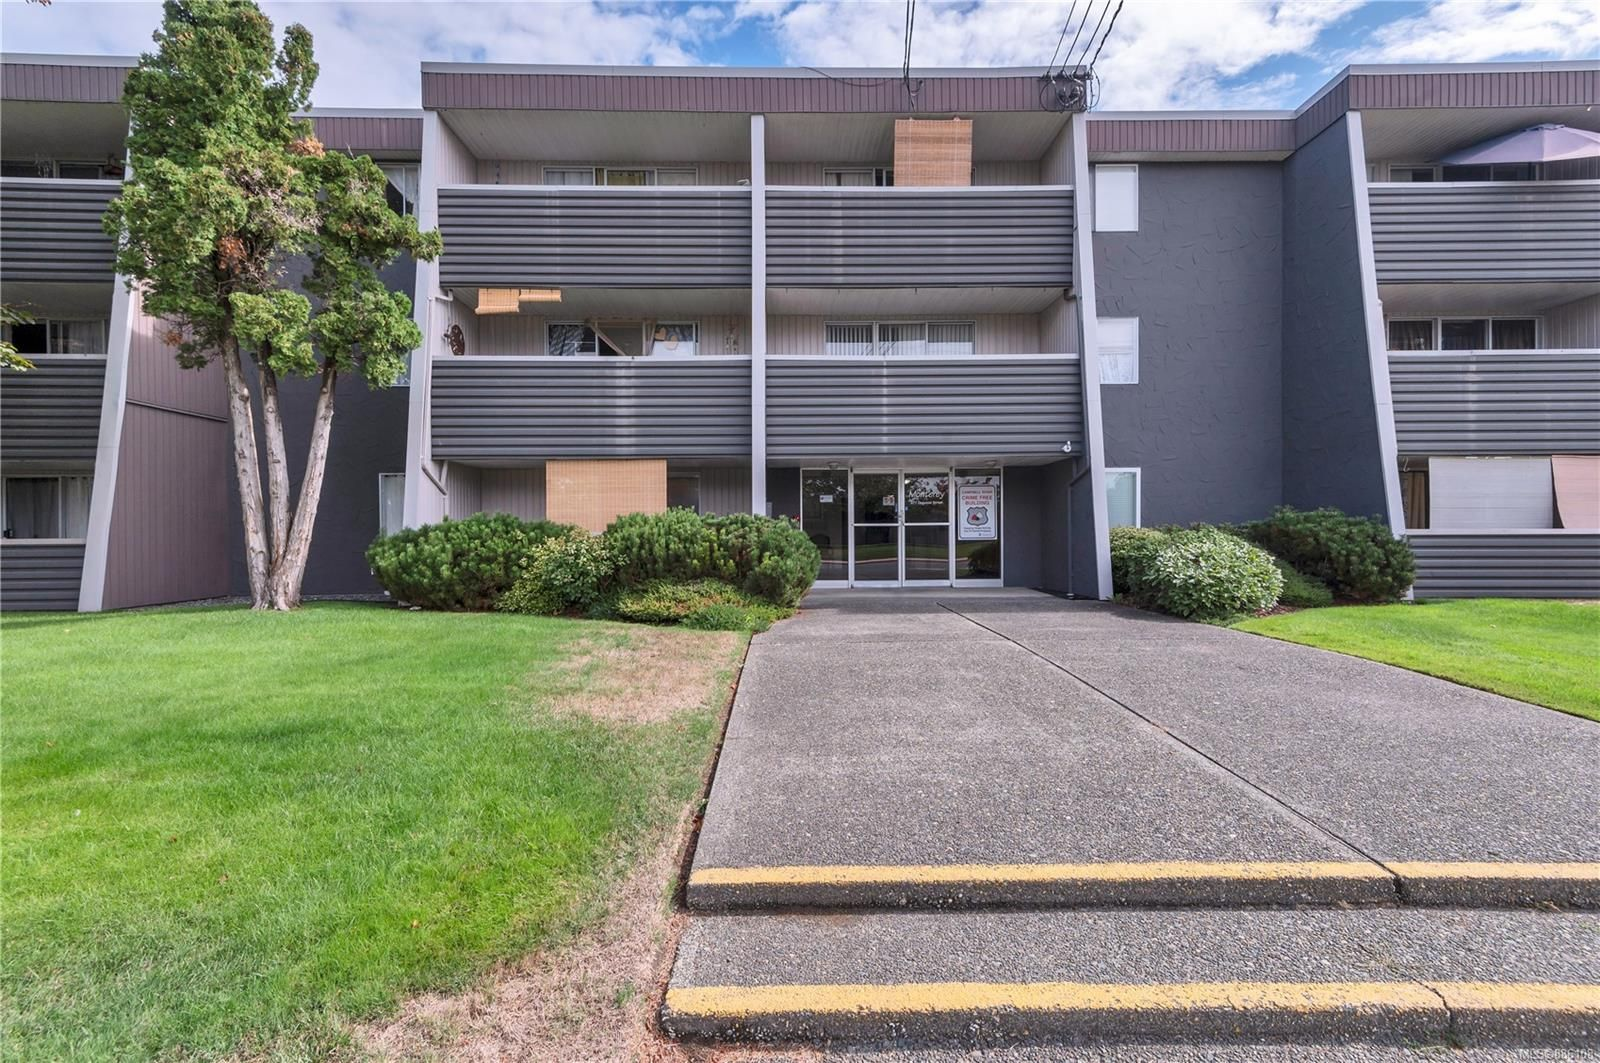 Main Photo: 210 377 Dogwood St in : CR Campbell River Central Condo for sale (Campbell River)  : MLS®# 886108